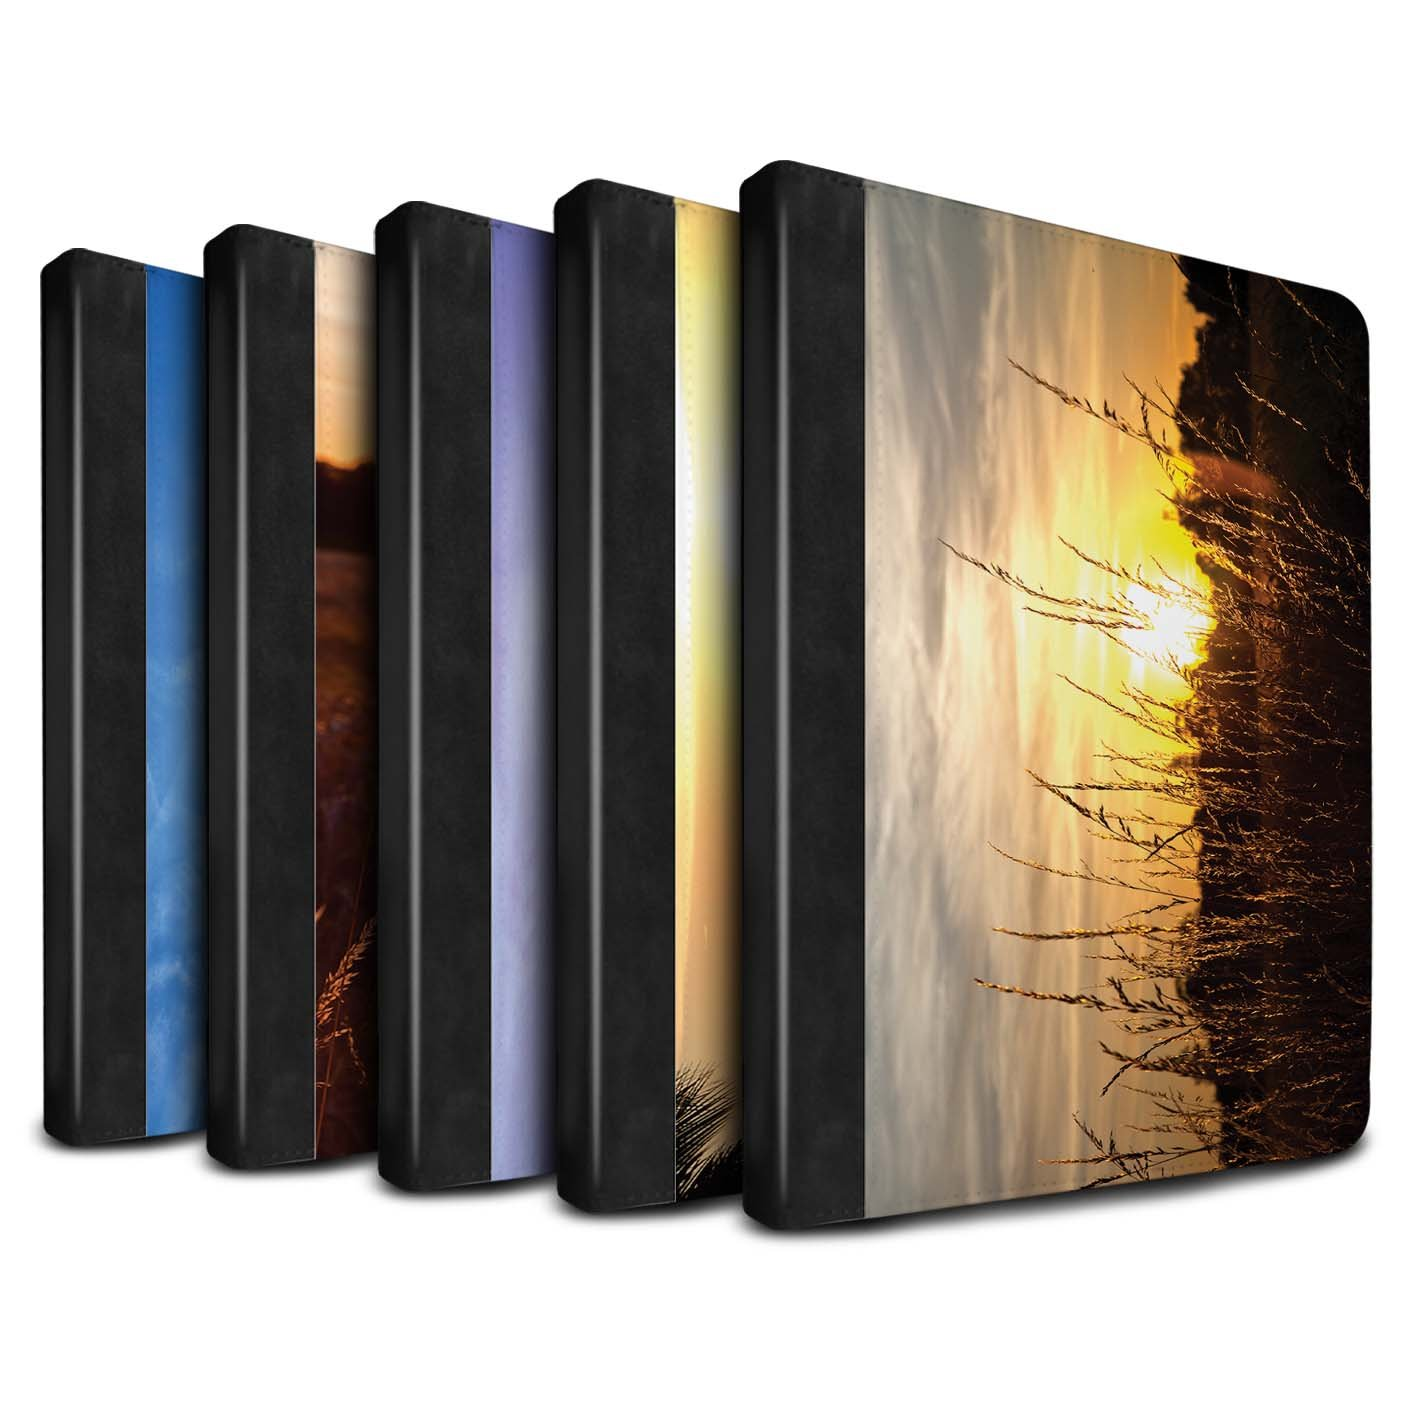 STUFF4 PU Leather Book/Cover Case for Apple iPad 9.7 (2017) tablets / Multipack (20 Pack) Design / Sunset Scenery Collection